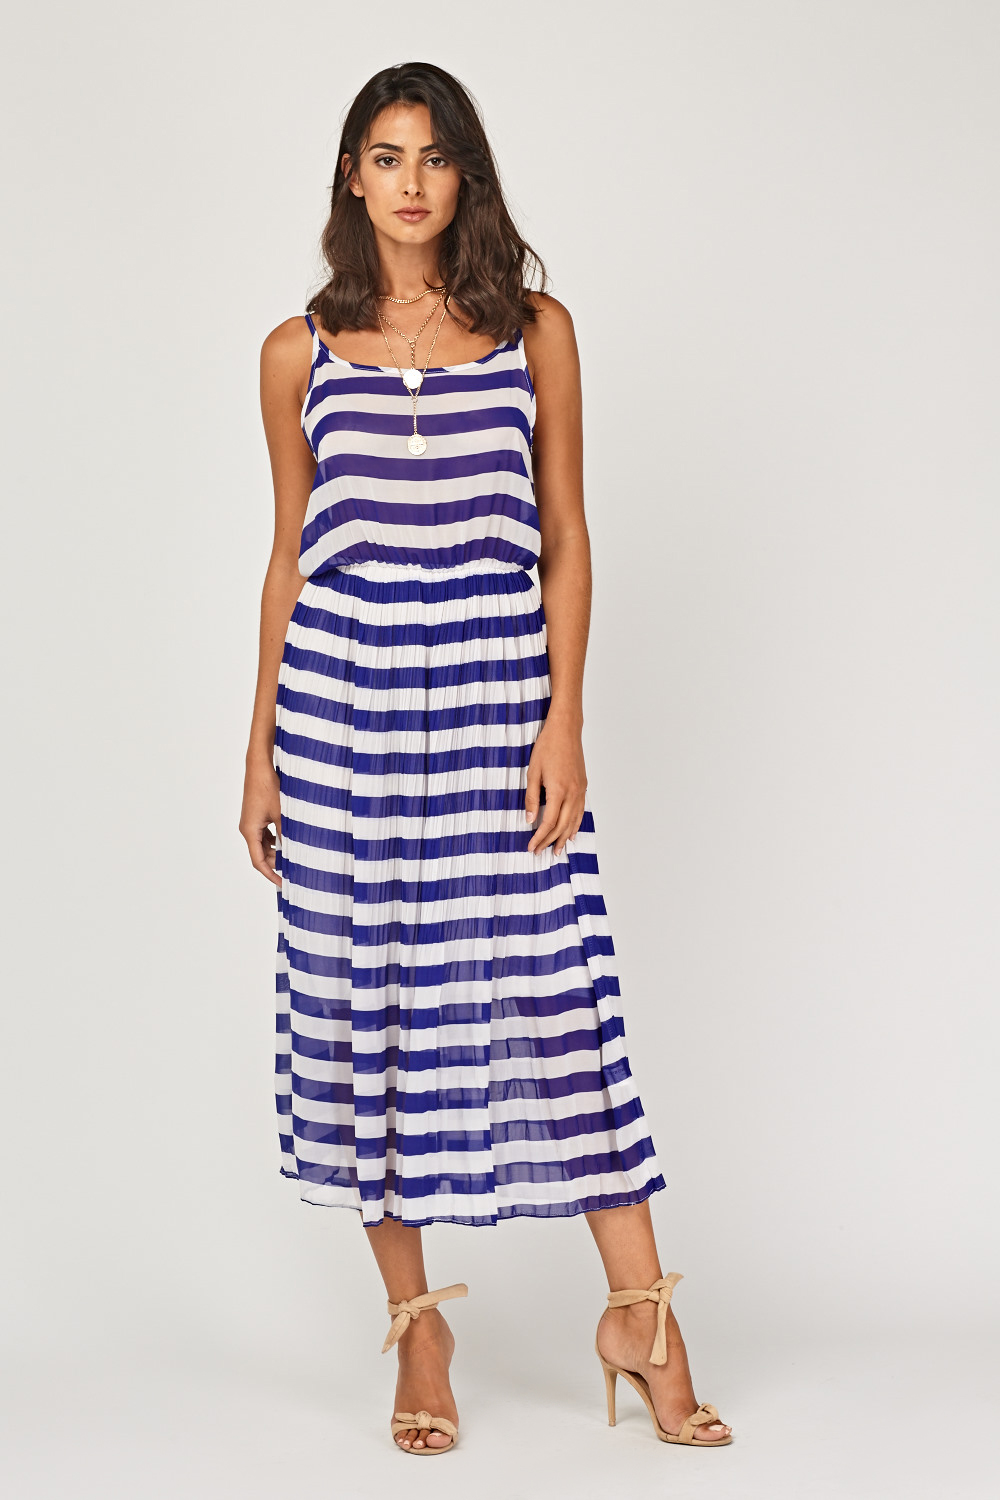 Pleated Striped Midi Dress - Black White or Blue White - Just £5 6a00097cc